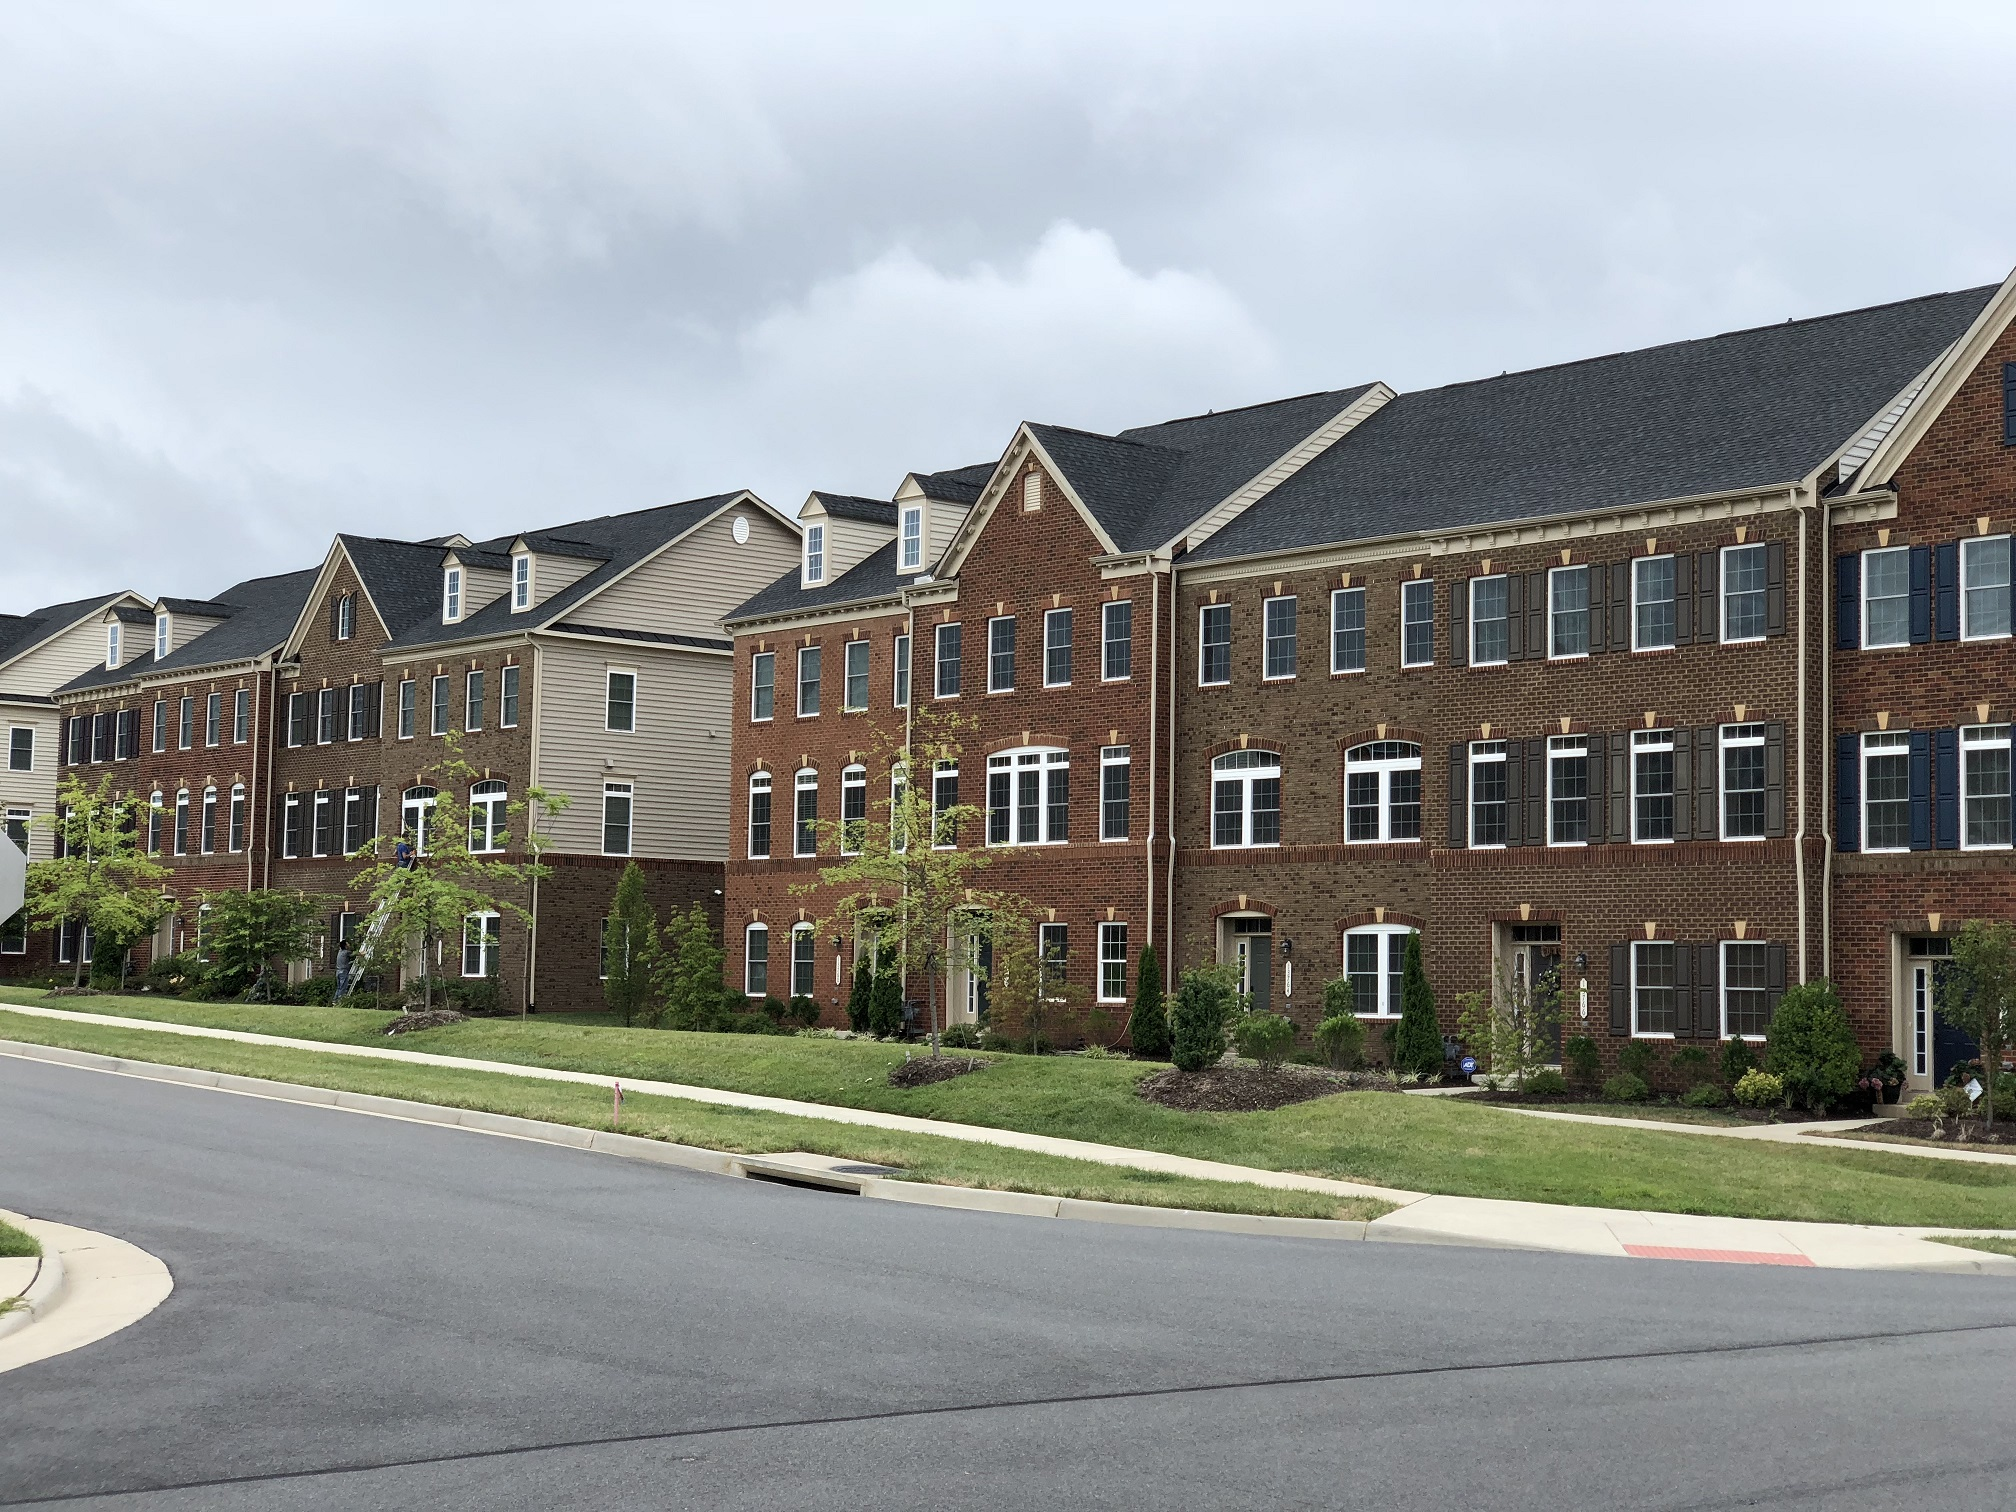 Townhouses at Wentworth Green in Gainesville, VA